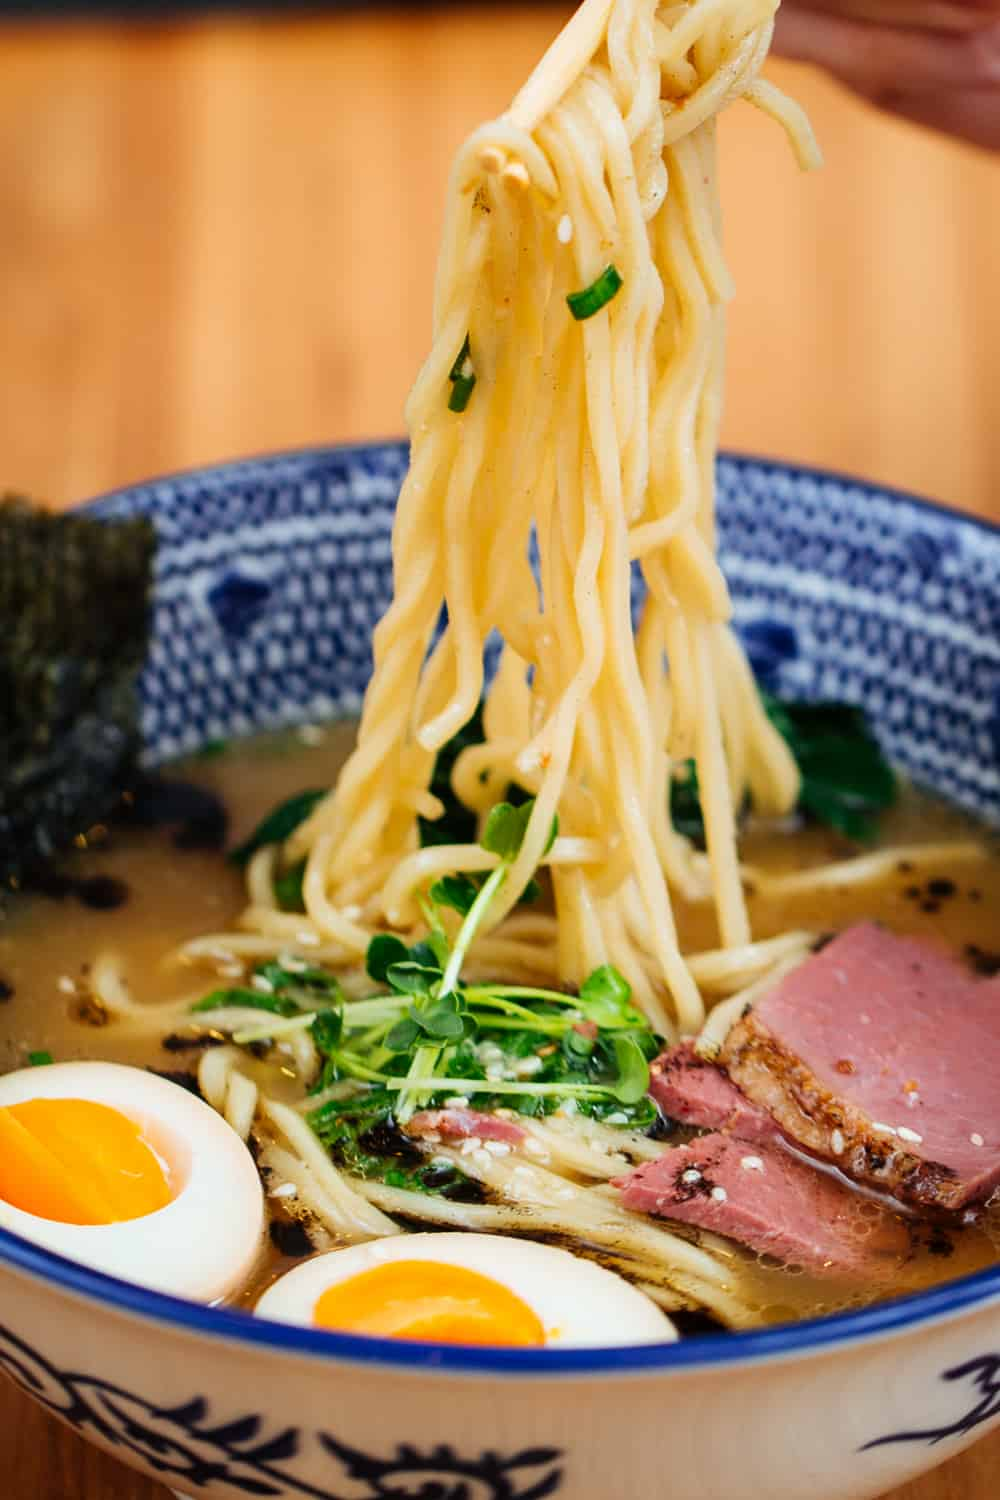 7 Tips to Tell if Ramen Noodles Have Gone Bad